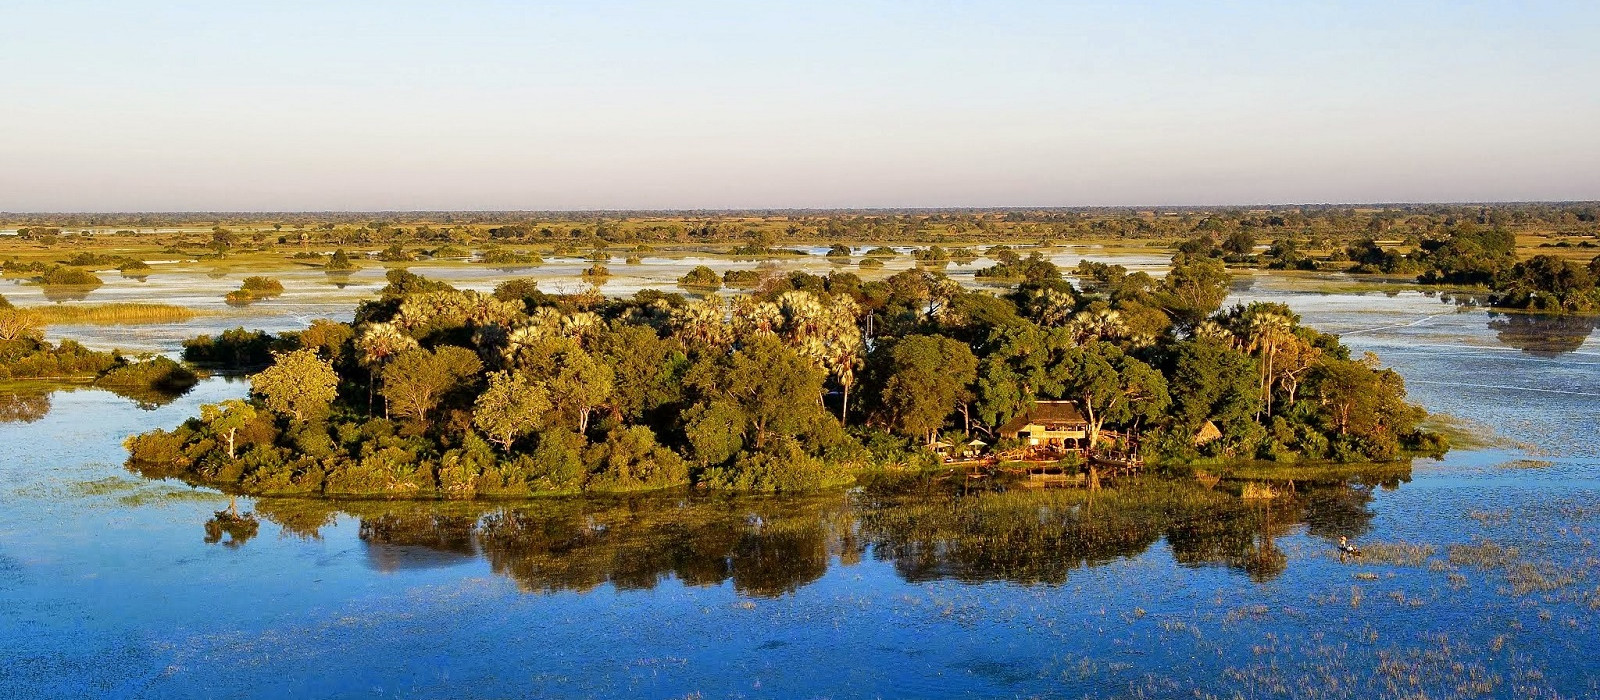 Wings over Botswana Tour Trip 1